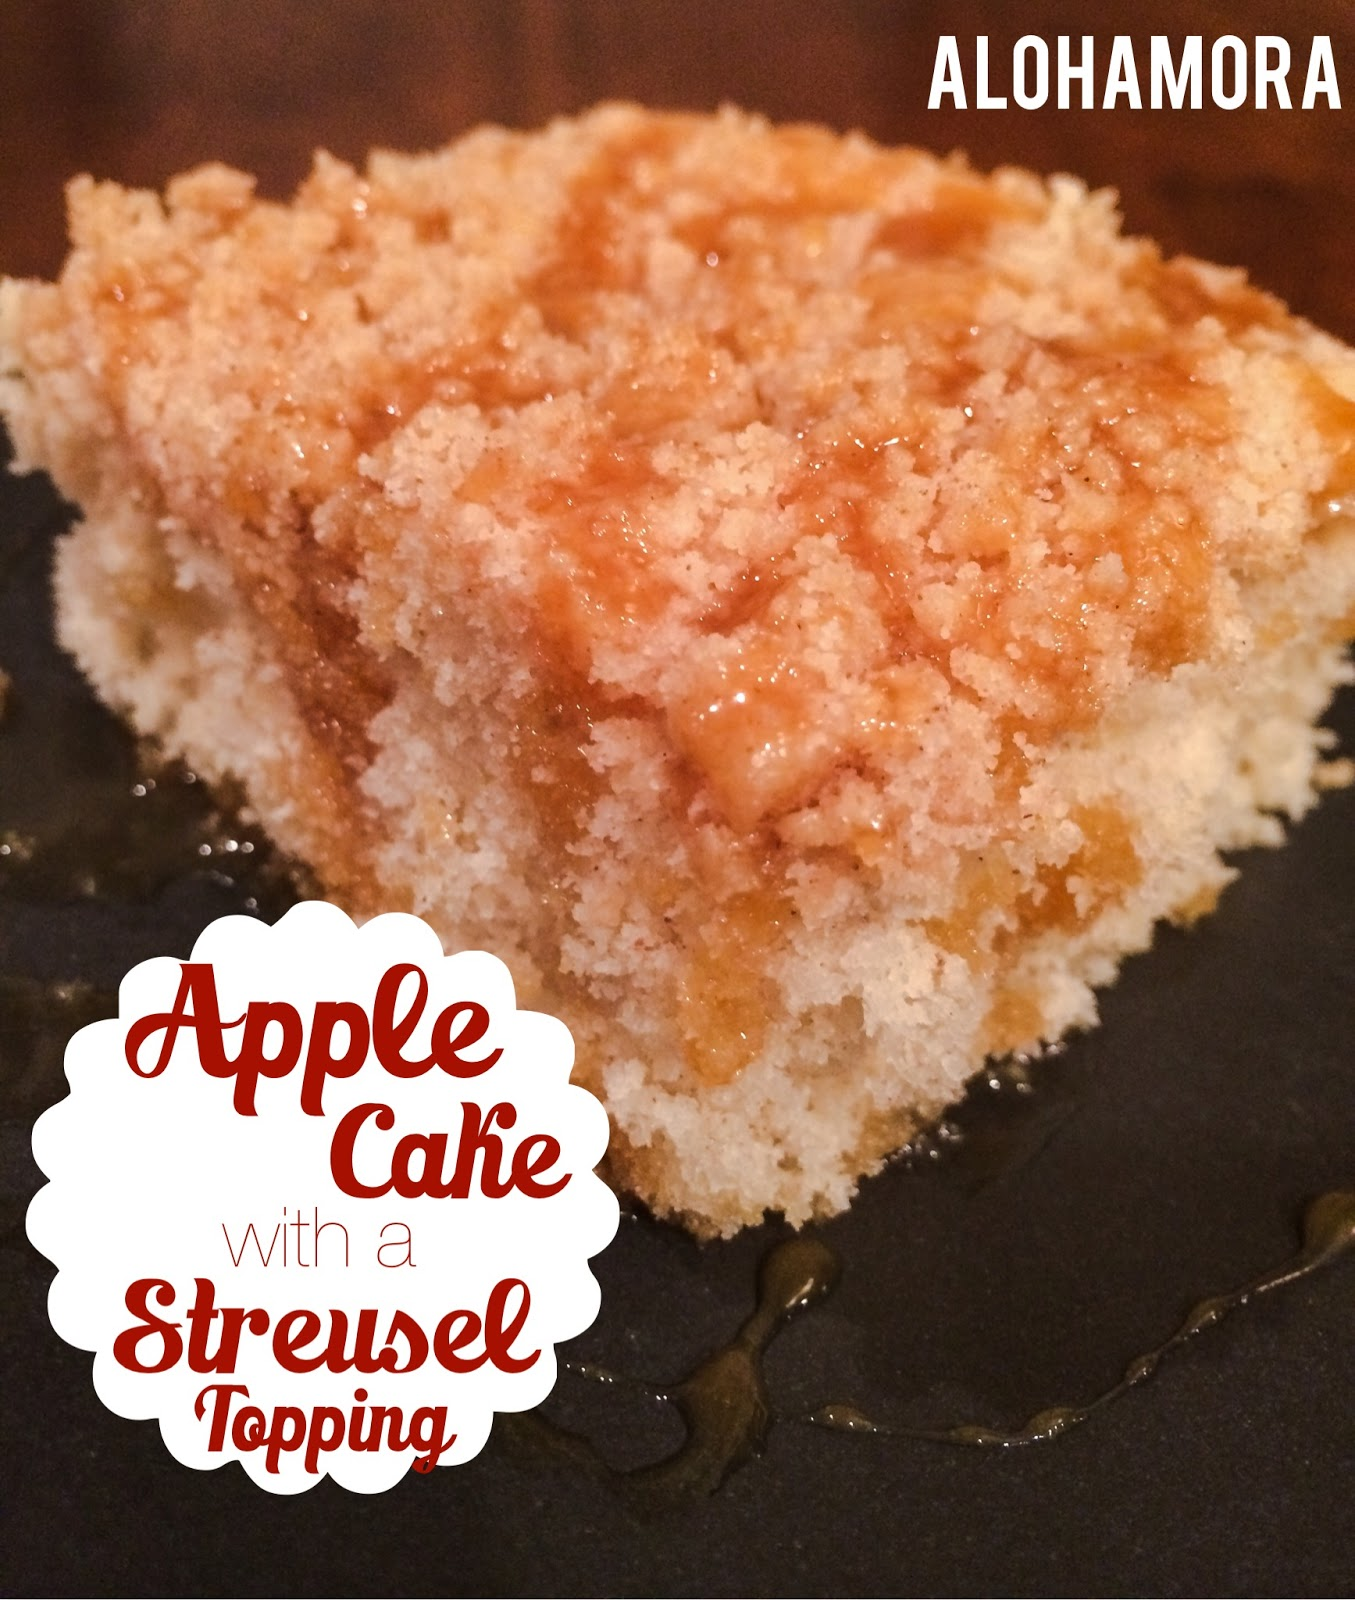 Apple Cake with a Streusel Topping is the perfect treat this time of year (Fall/Autumn).  This recipe and cake make a light and sweet with the perfect amount of apple.  This cake is easy to make, and it is from scratch.  Enjoy with caramel sauce or ice cream for a truly amazing dessert. Alohamora Open a Book http://www.alohamoraopenabook.blogspot.com/